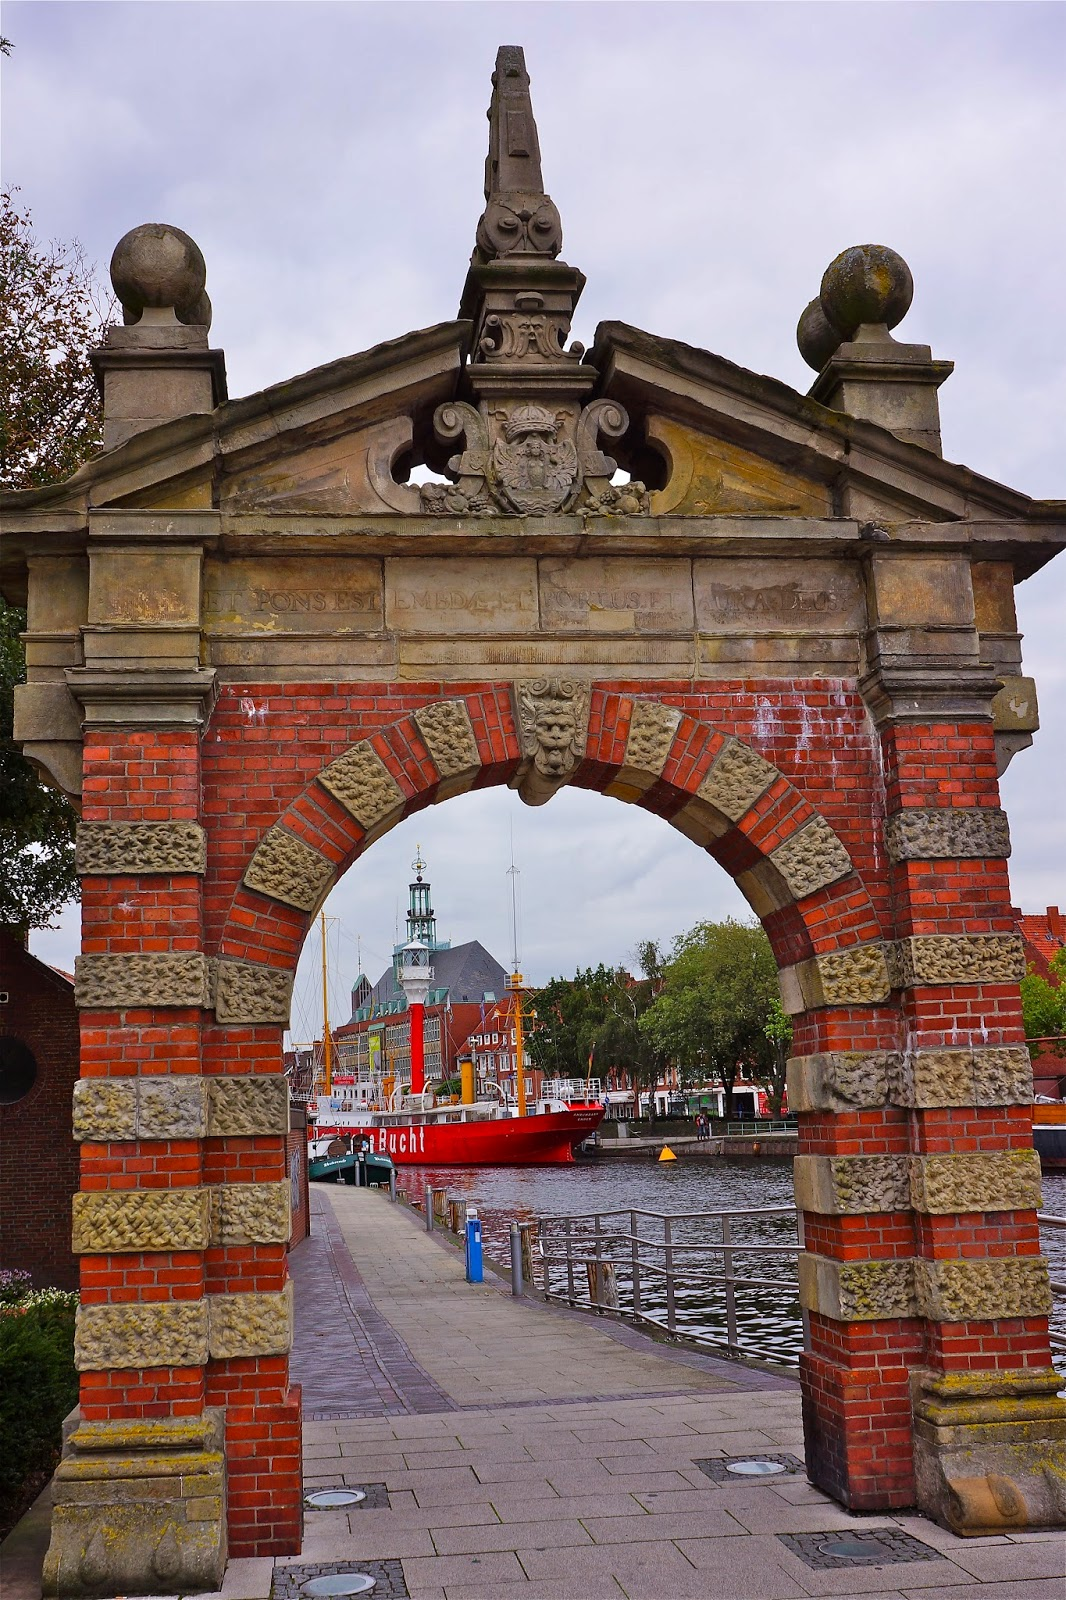 Picture of the harbour gate (hafentor) in Emden.